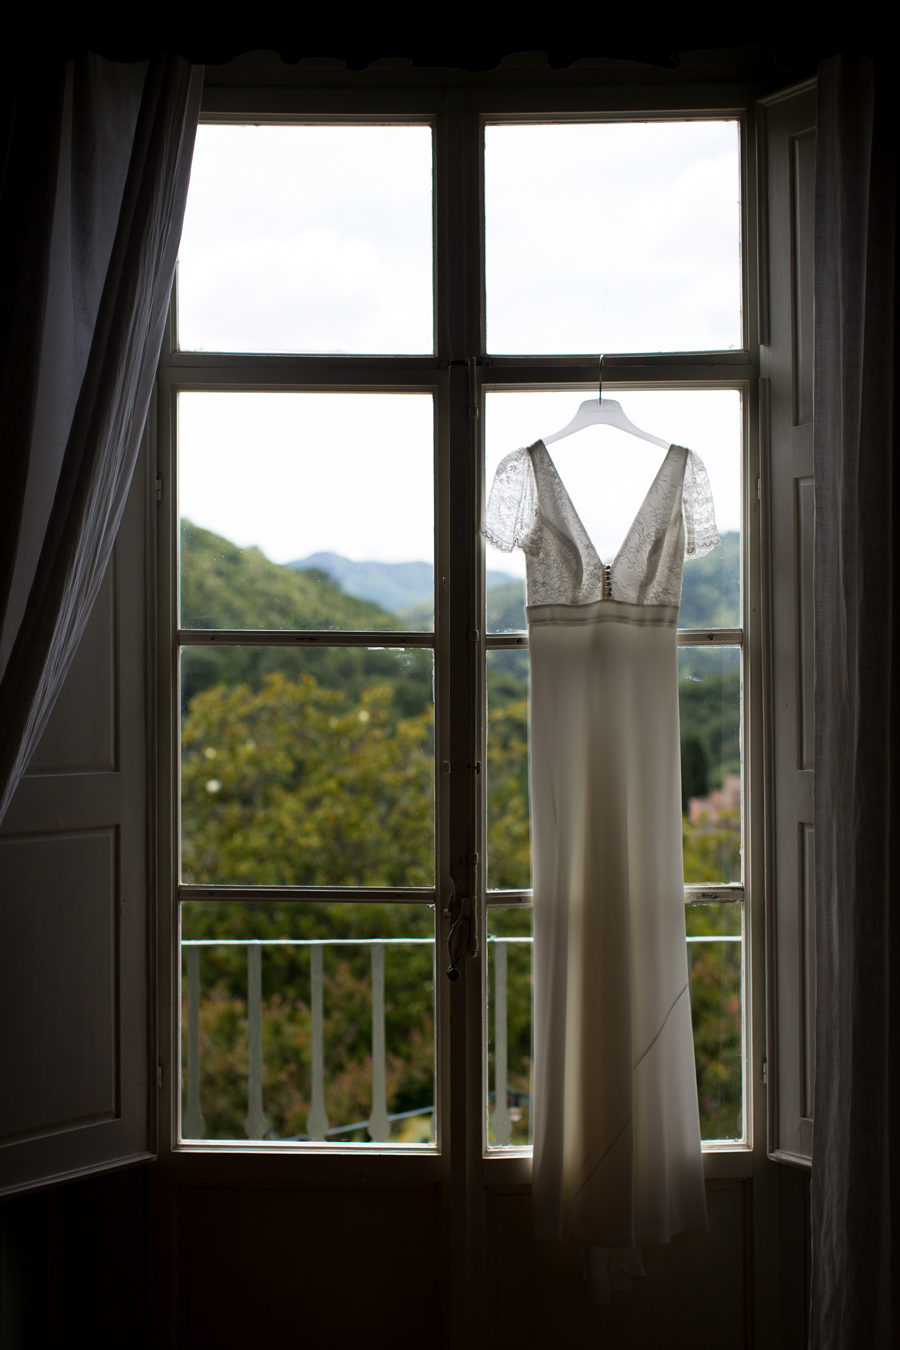 Destination wedding Italy - Petrolo - Hermione McCosh PhotographyDestination wedding Italy - Petrolo - Hermione McCosh Photography